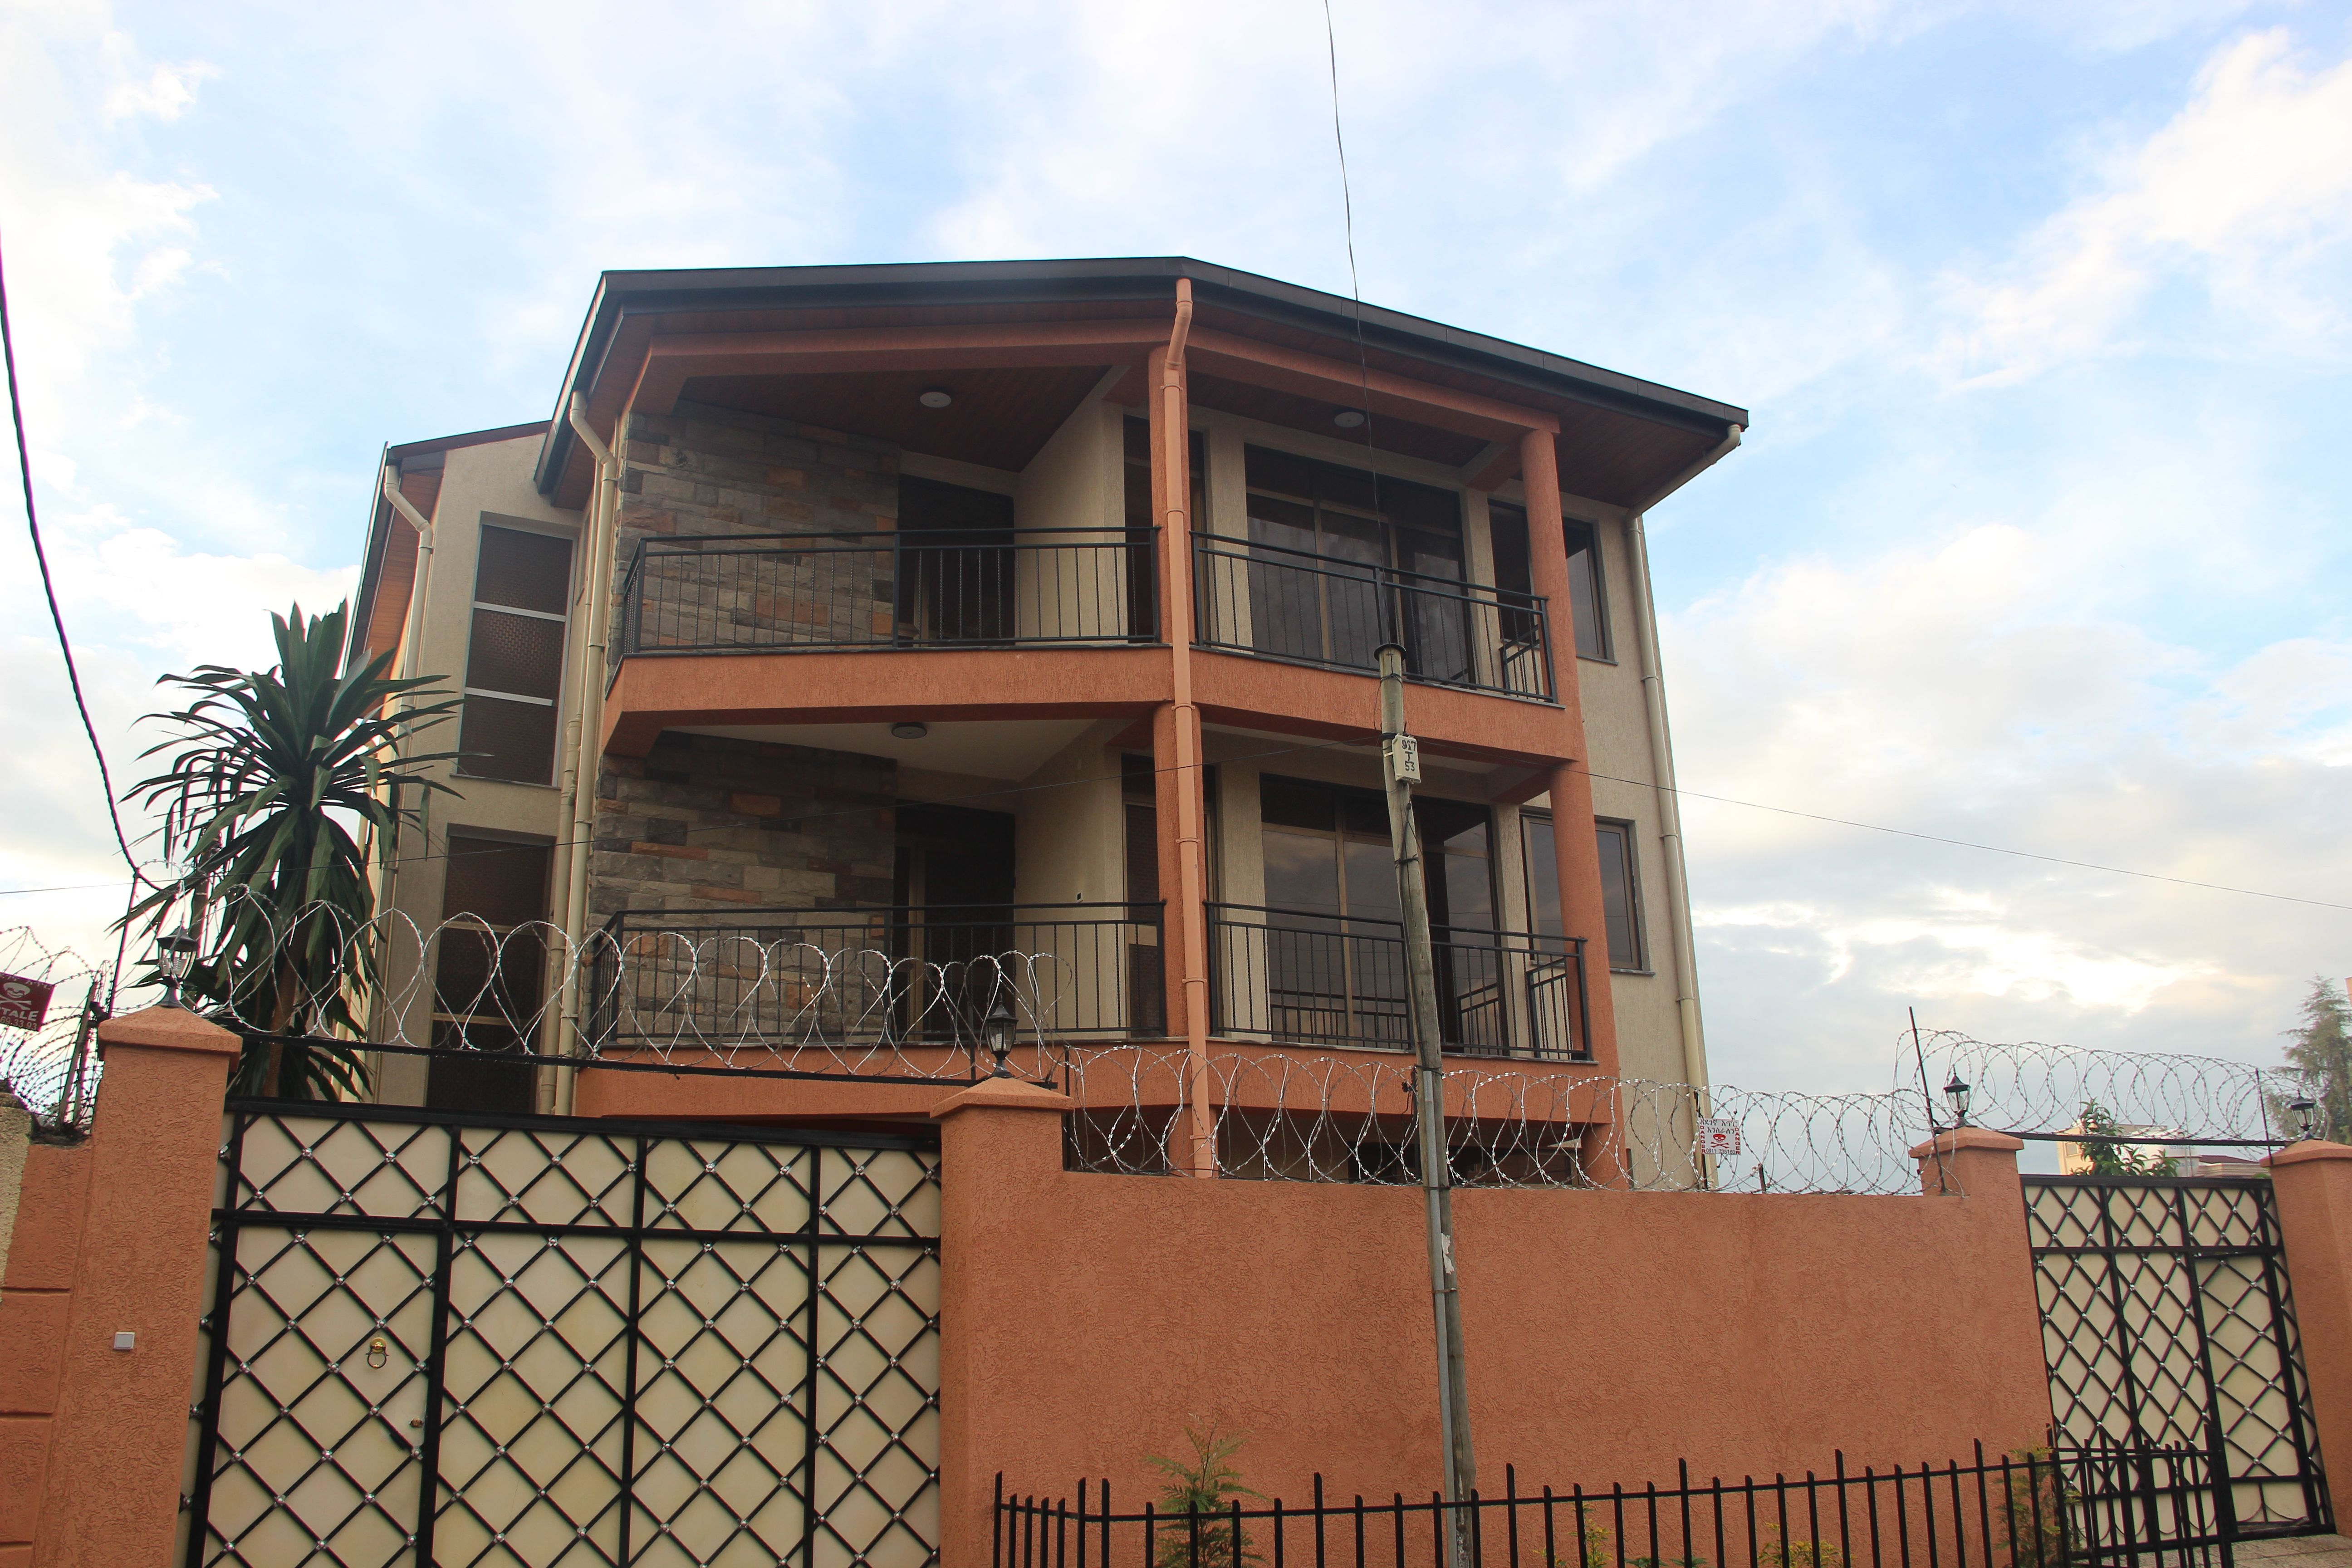 Brand New 5 Bedroom House For Rent In Wello Sefer Close To Ethio Chinese Street Addis Ababa Ethiopia E Tiny Houses For Rent 5 Bedroom House Simple House Plans